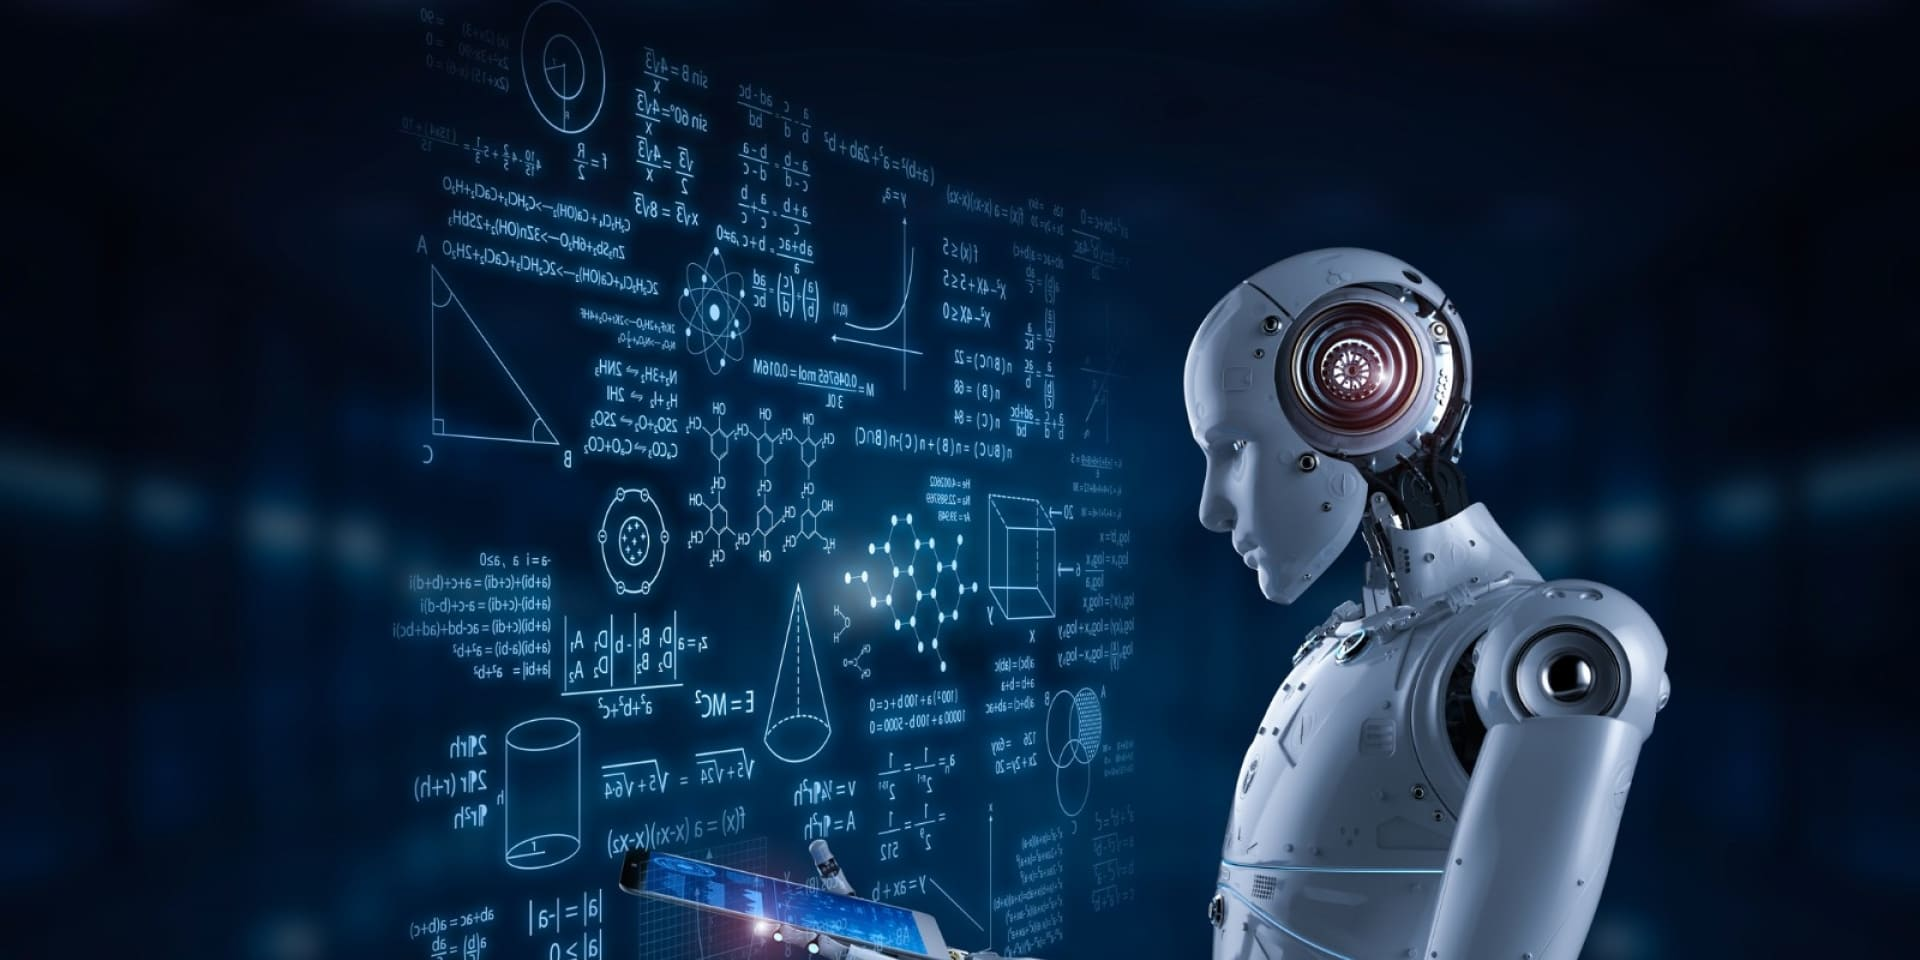 What is artificial intelligence neural network